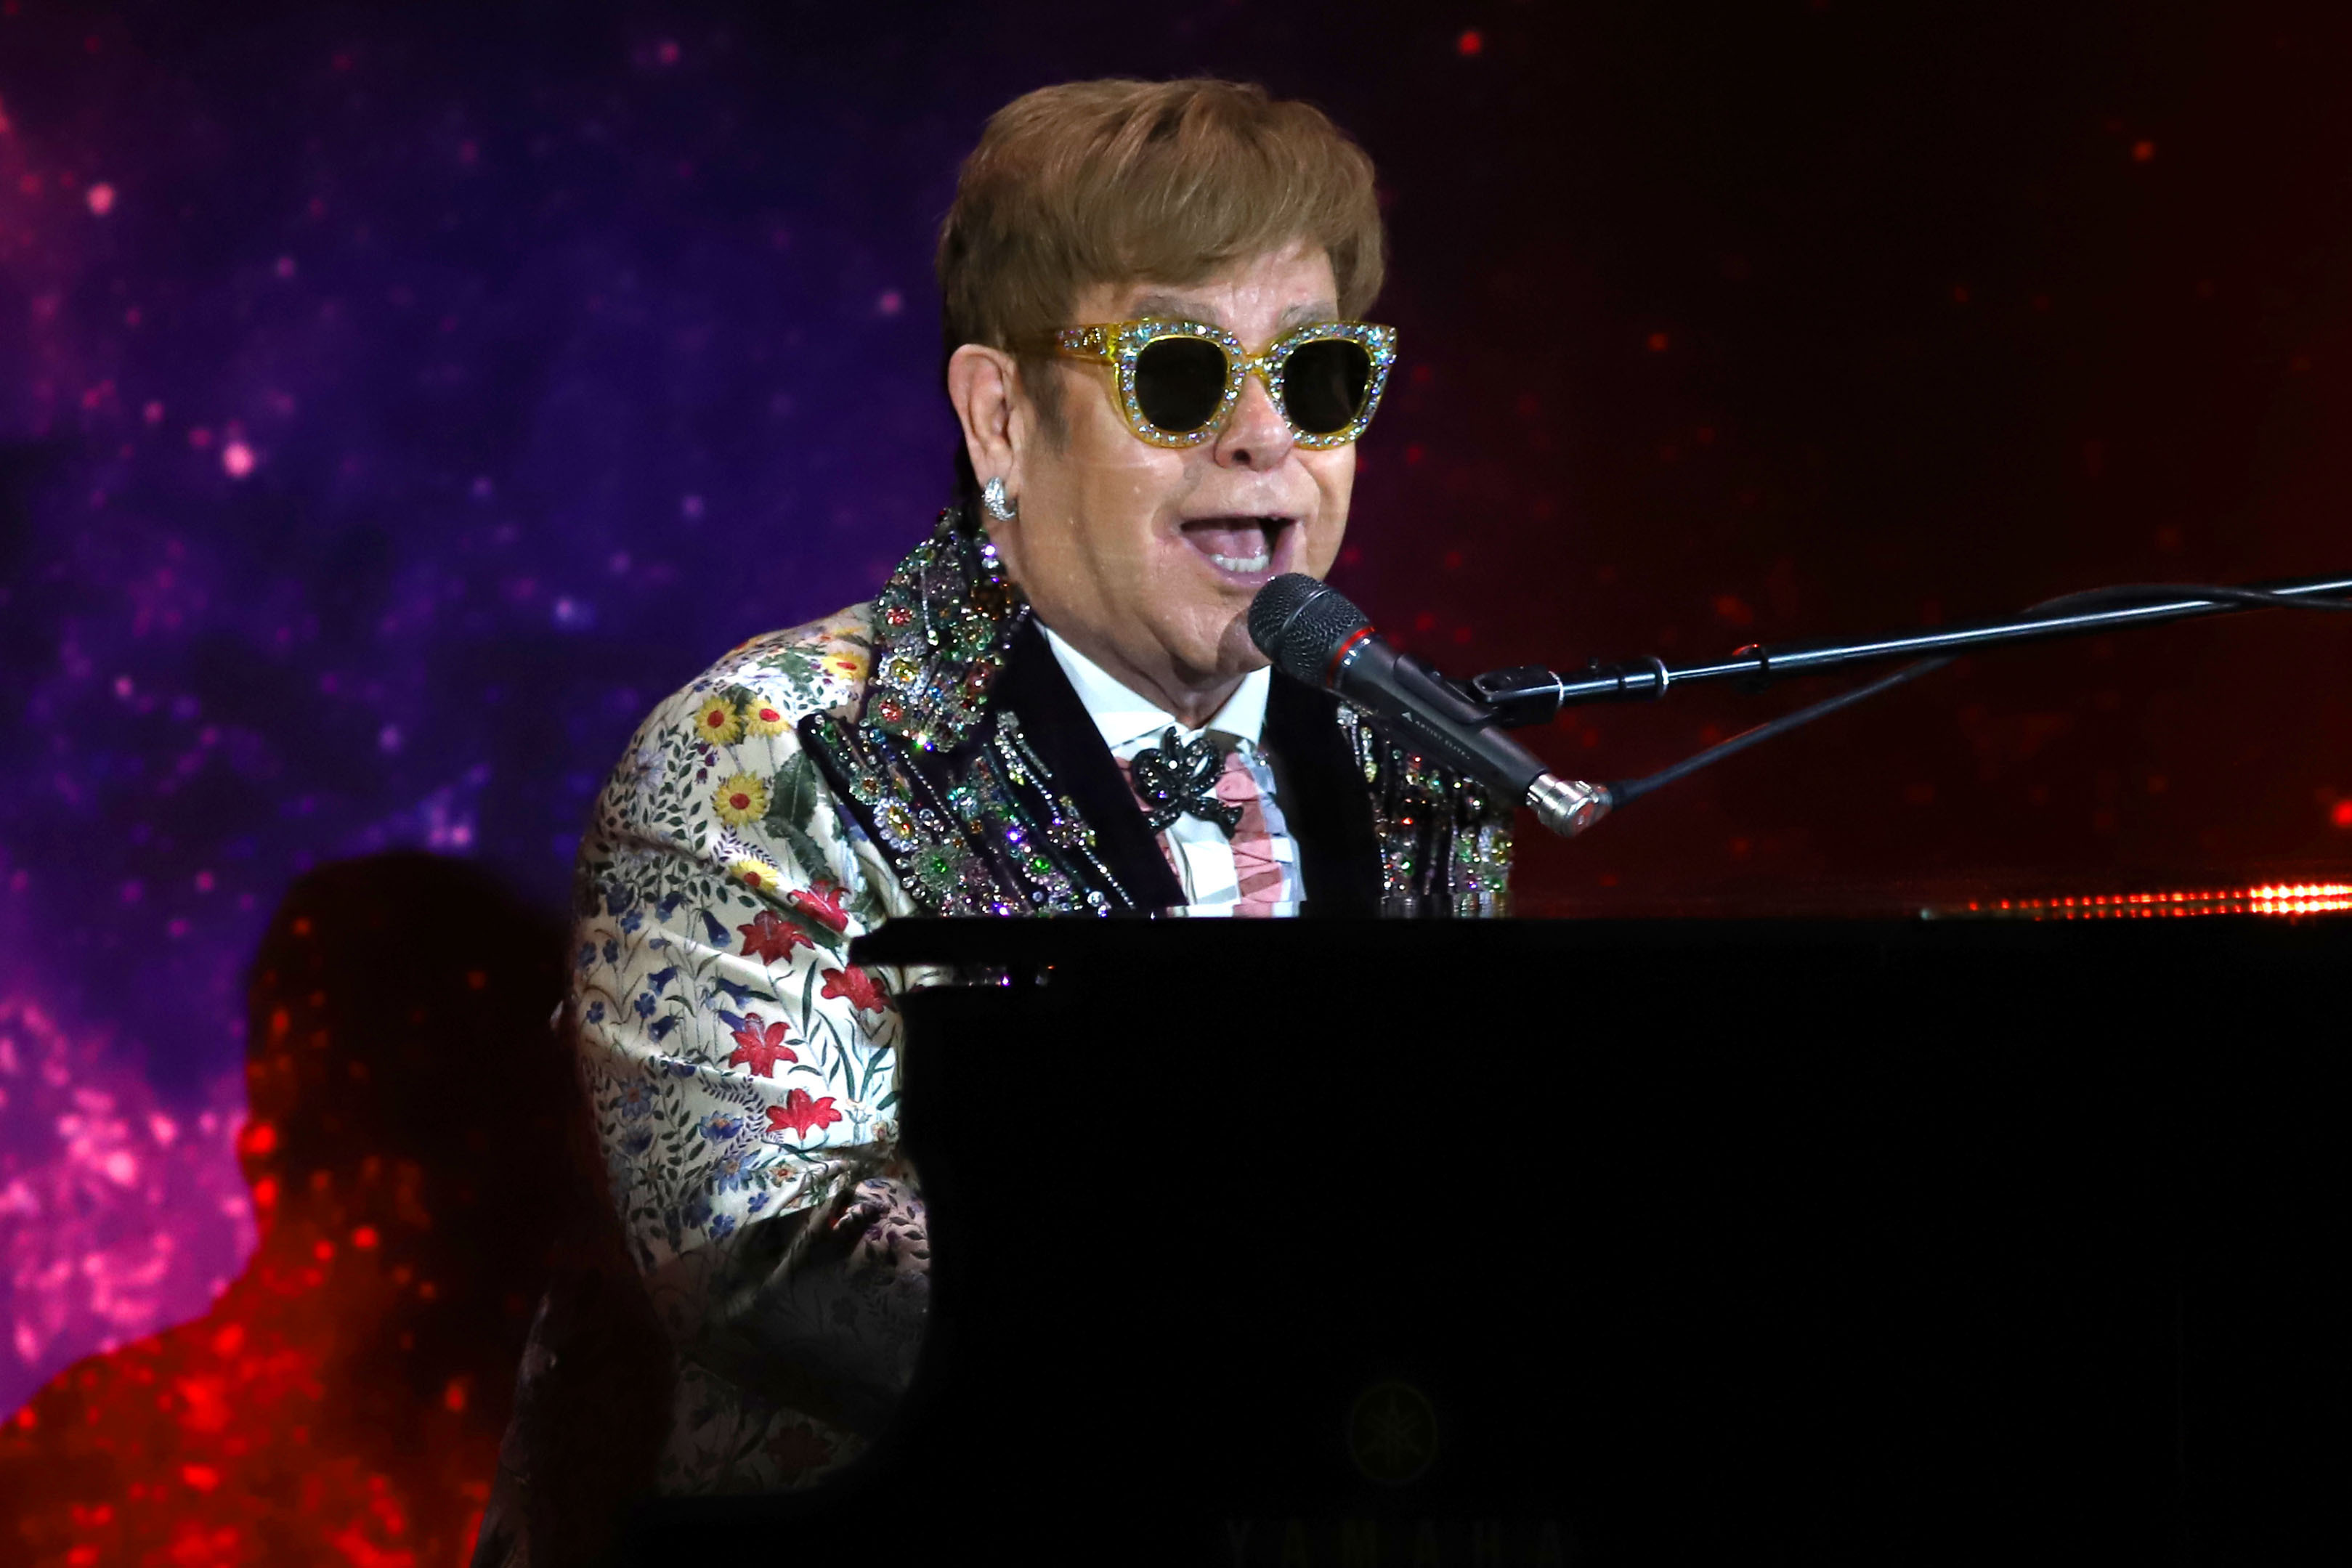 Elton John announces massive retirement tour